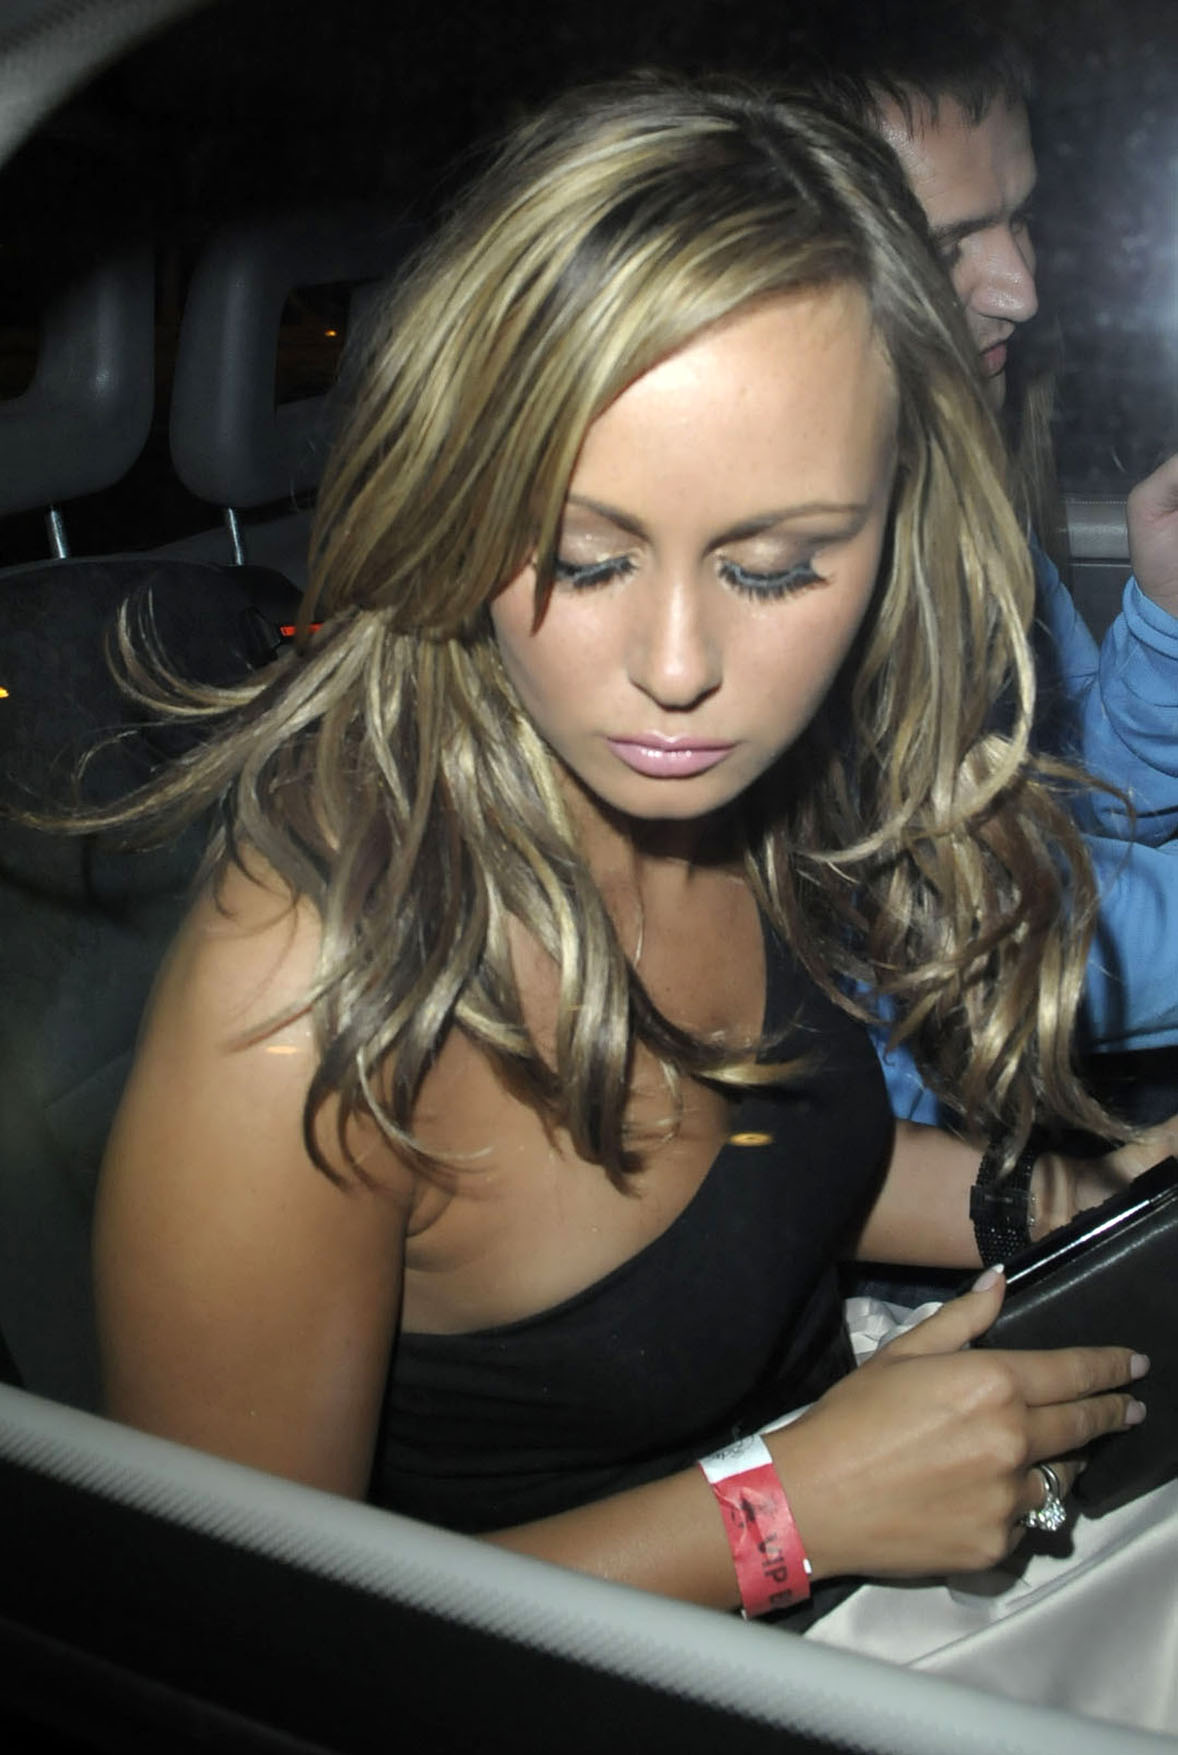 middlesbrough milf personals Los angeles xxx porn stars section - the eros guide to los angeles porn stars and xxx entertainers.